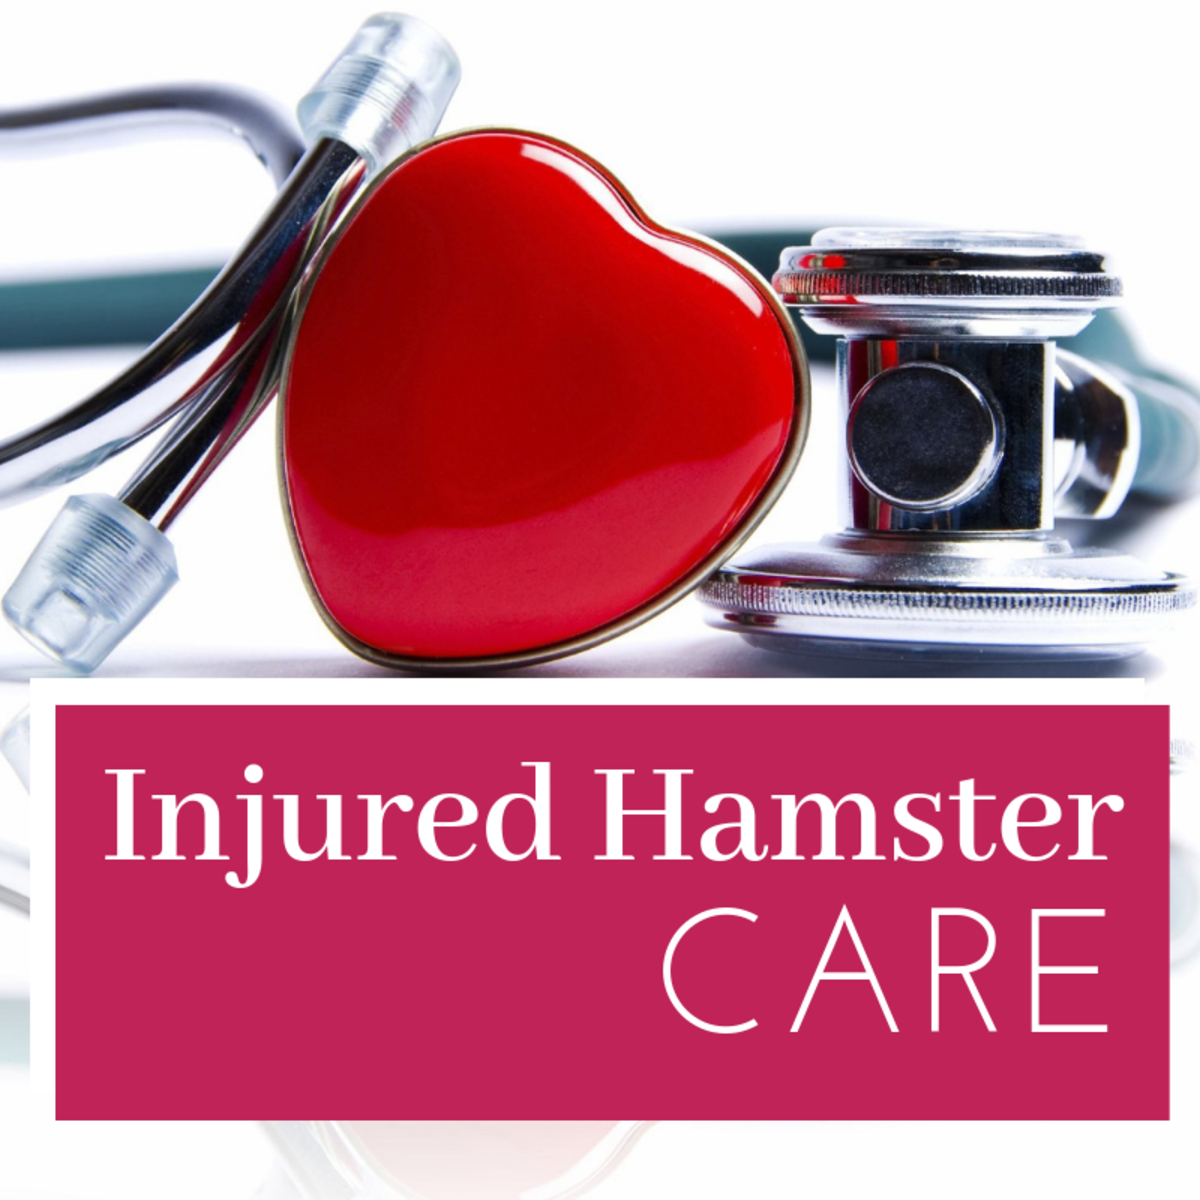 Injured Hamster Care